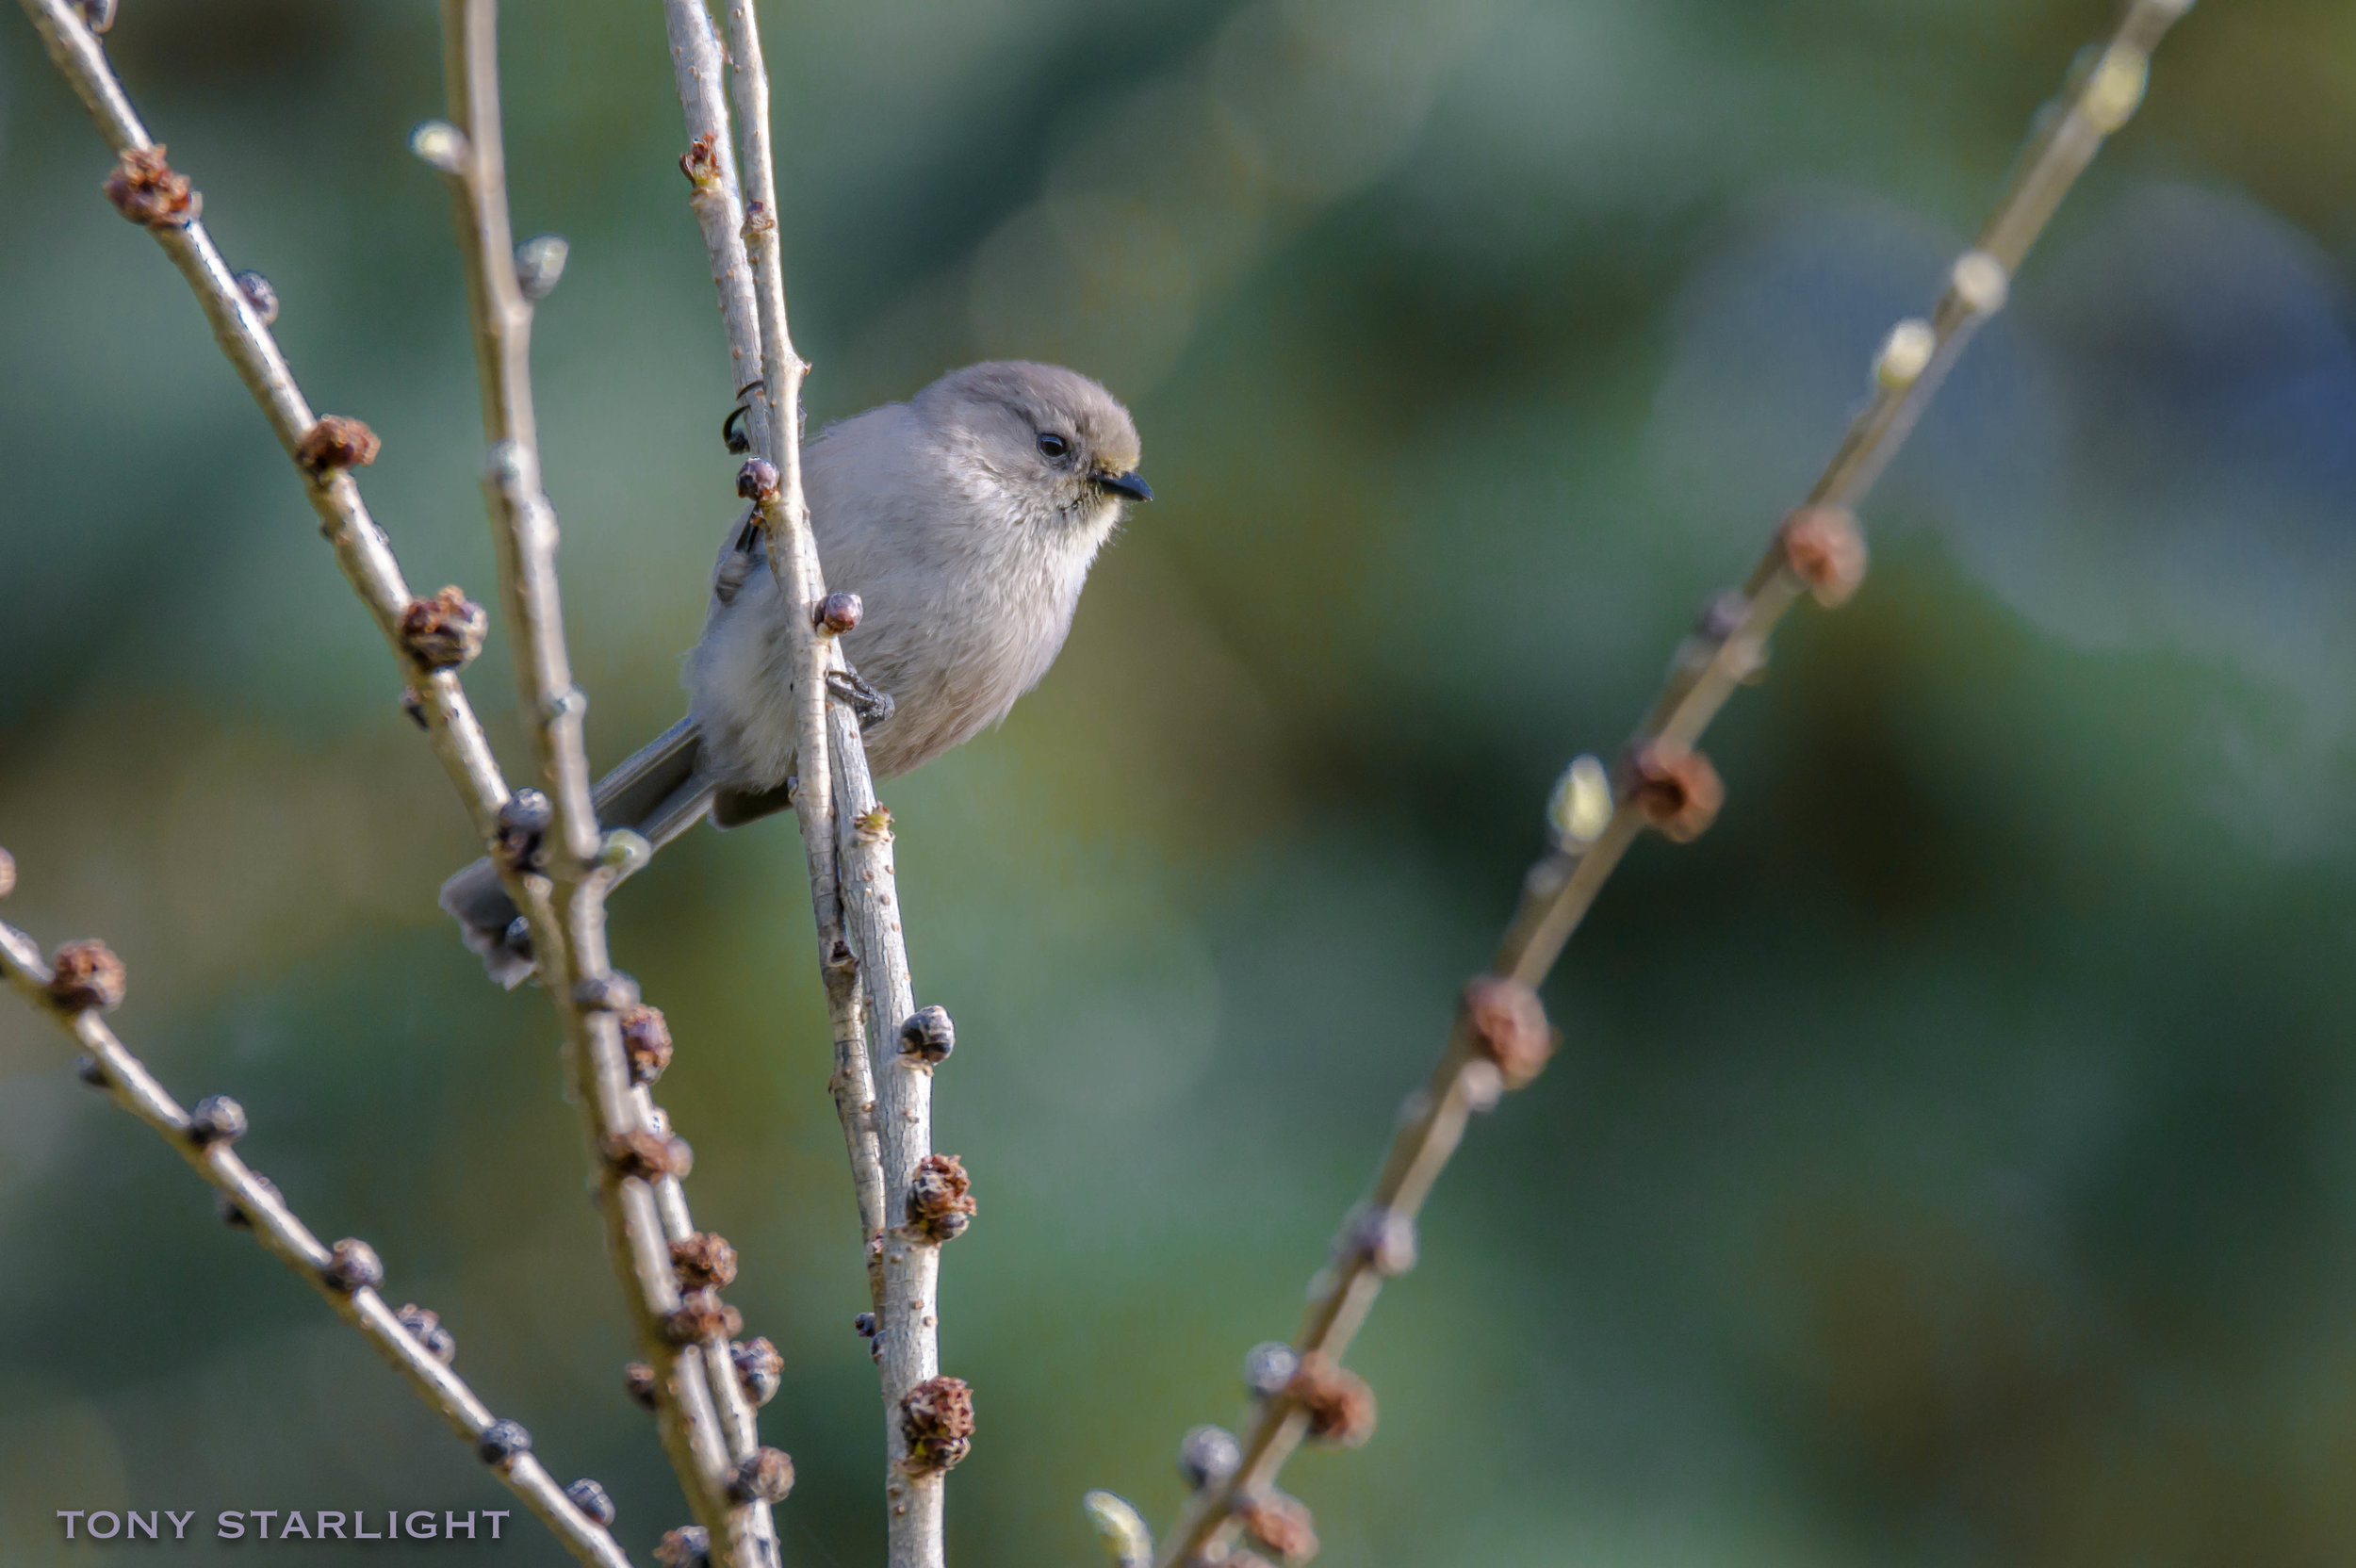 Bushtit - When I was 16, my classmates and I would have giggled every time someone said